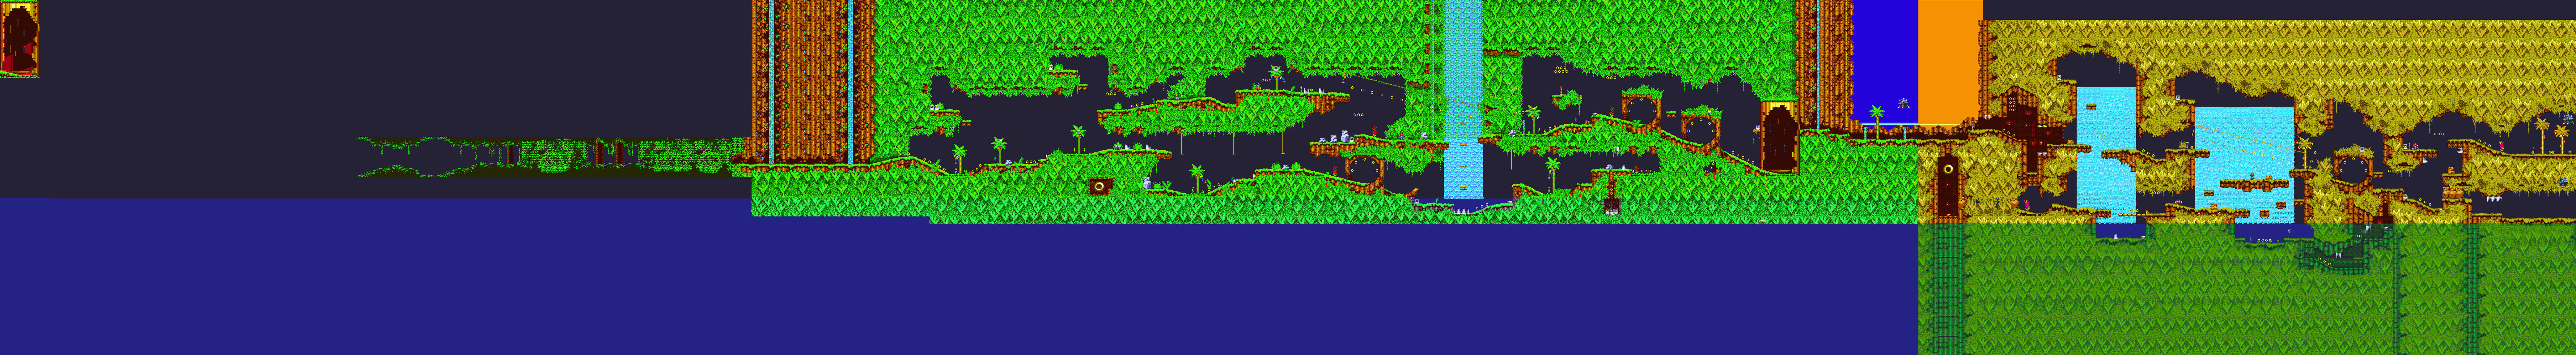 Sonic 3 Maps The Sonic Center